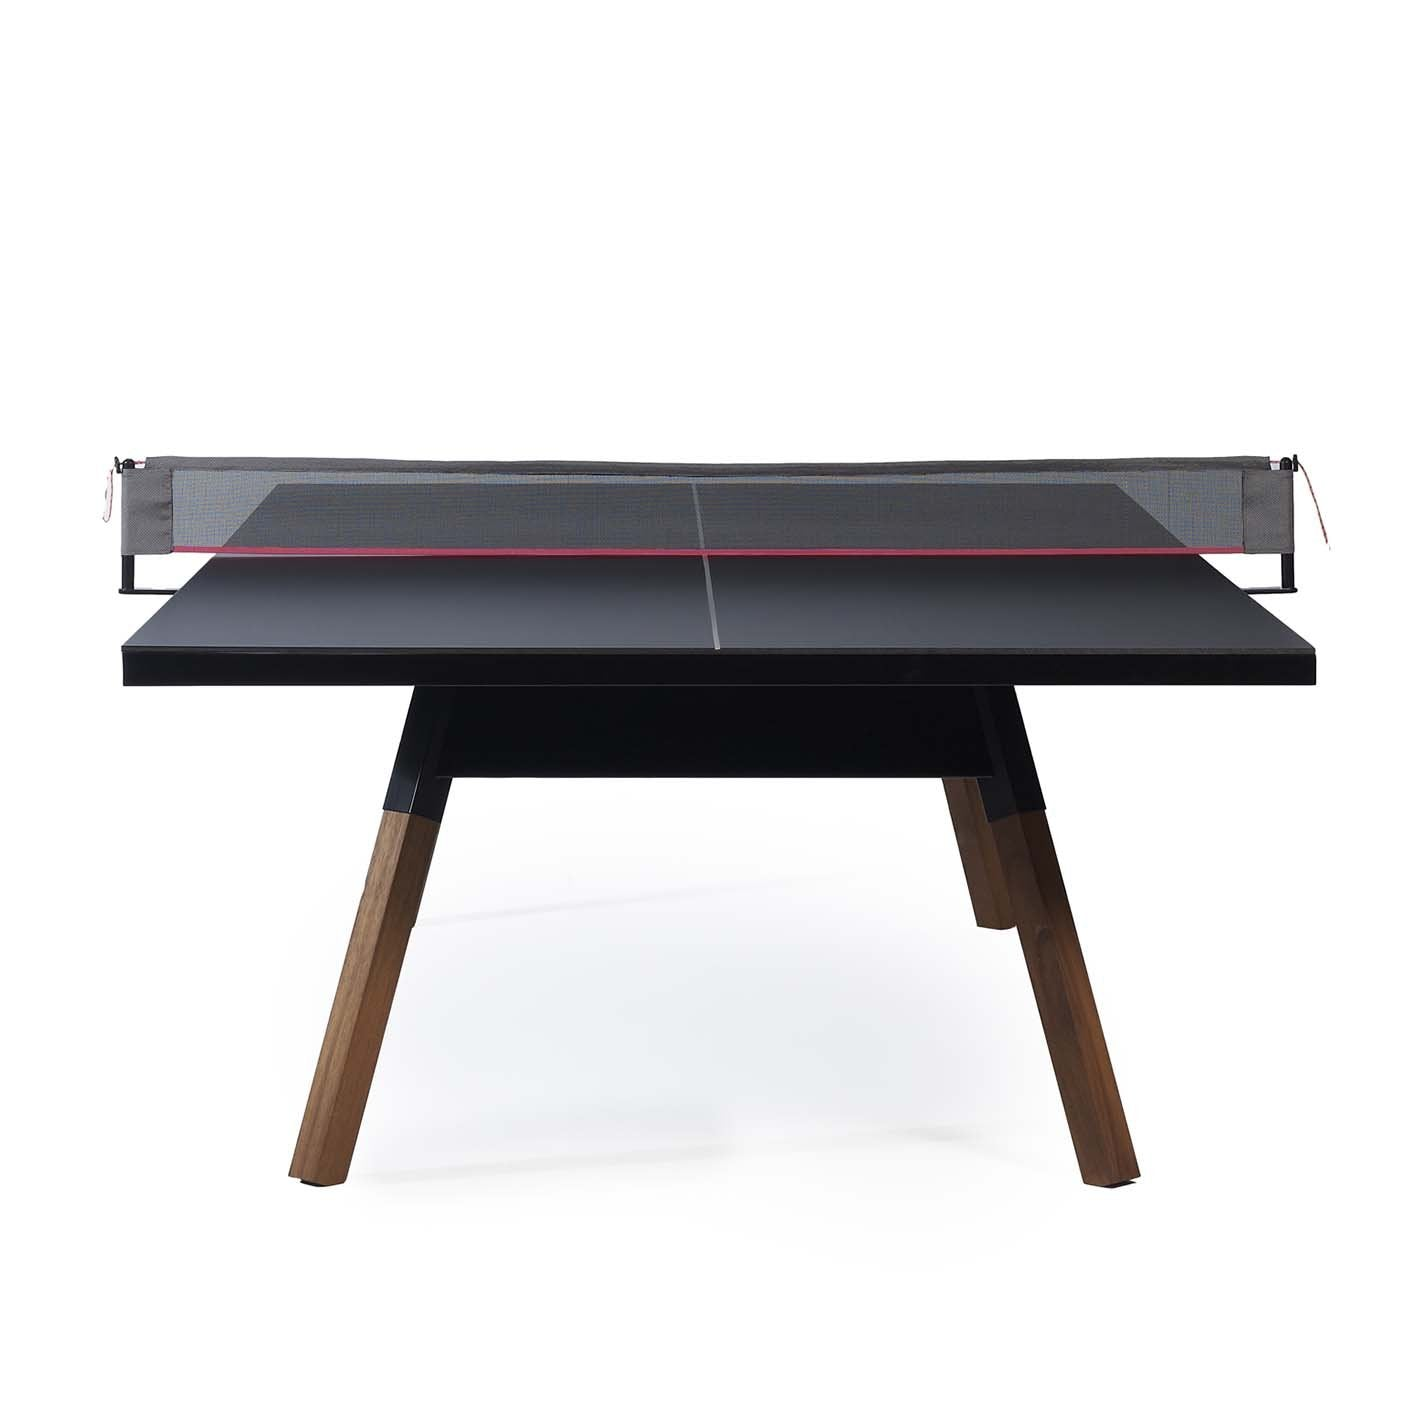 You & Me Table tennis table black